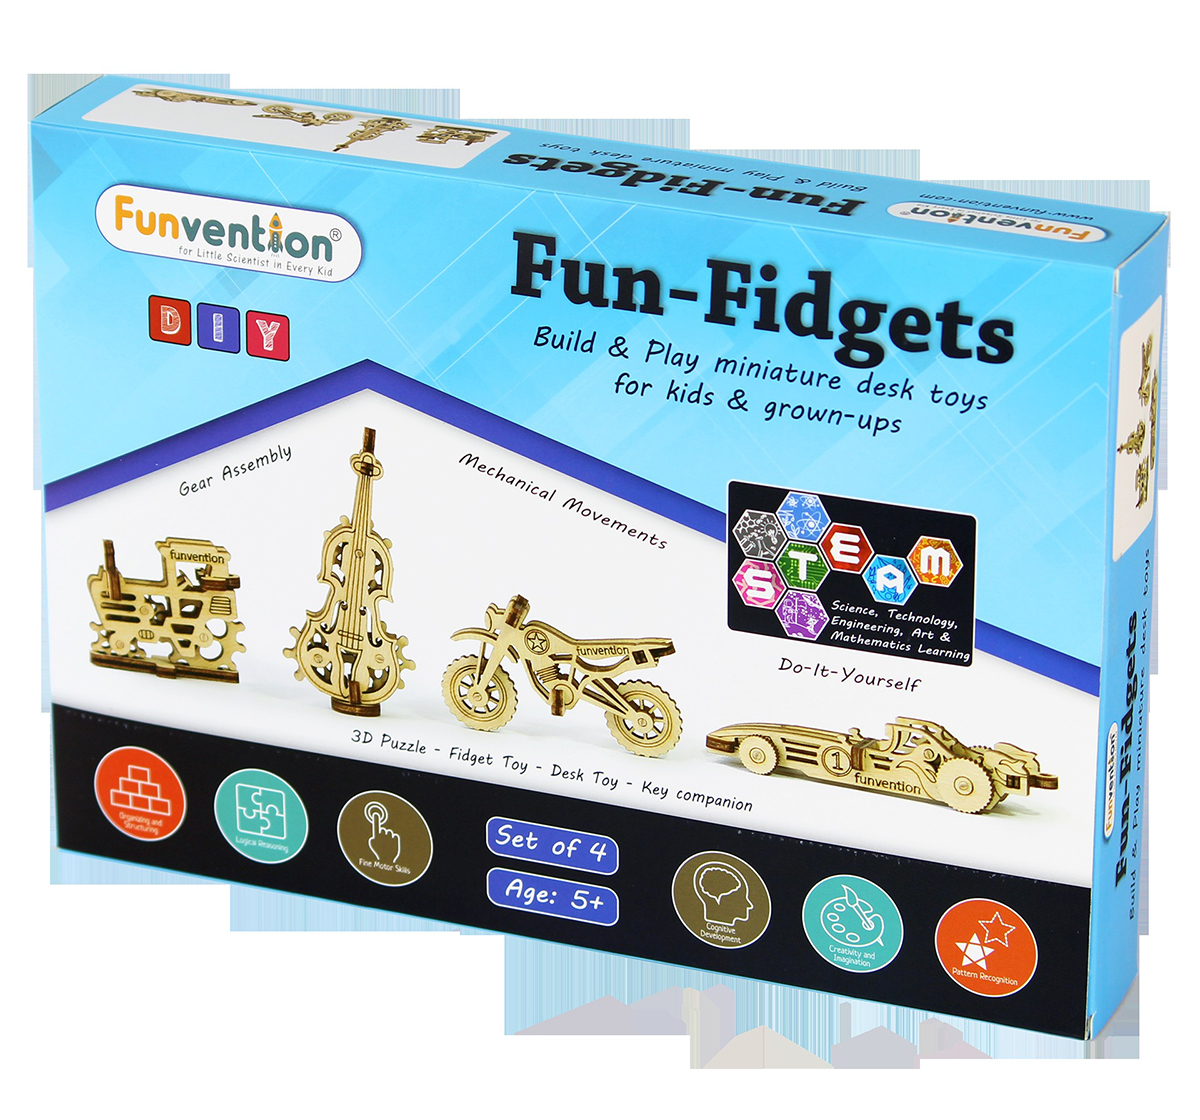 Funvention | Funvention Fun Fidgets - Assorted - Set Of 4 Model Stem for Kids Age 5Y+